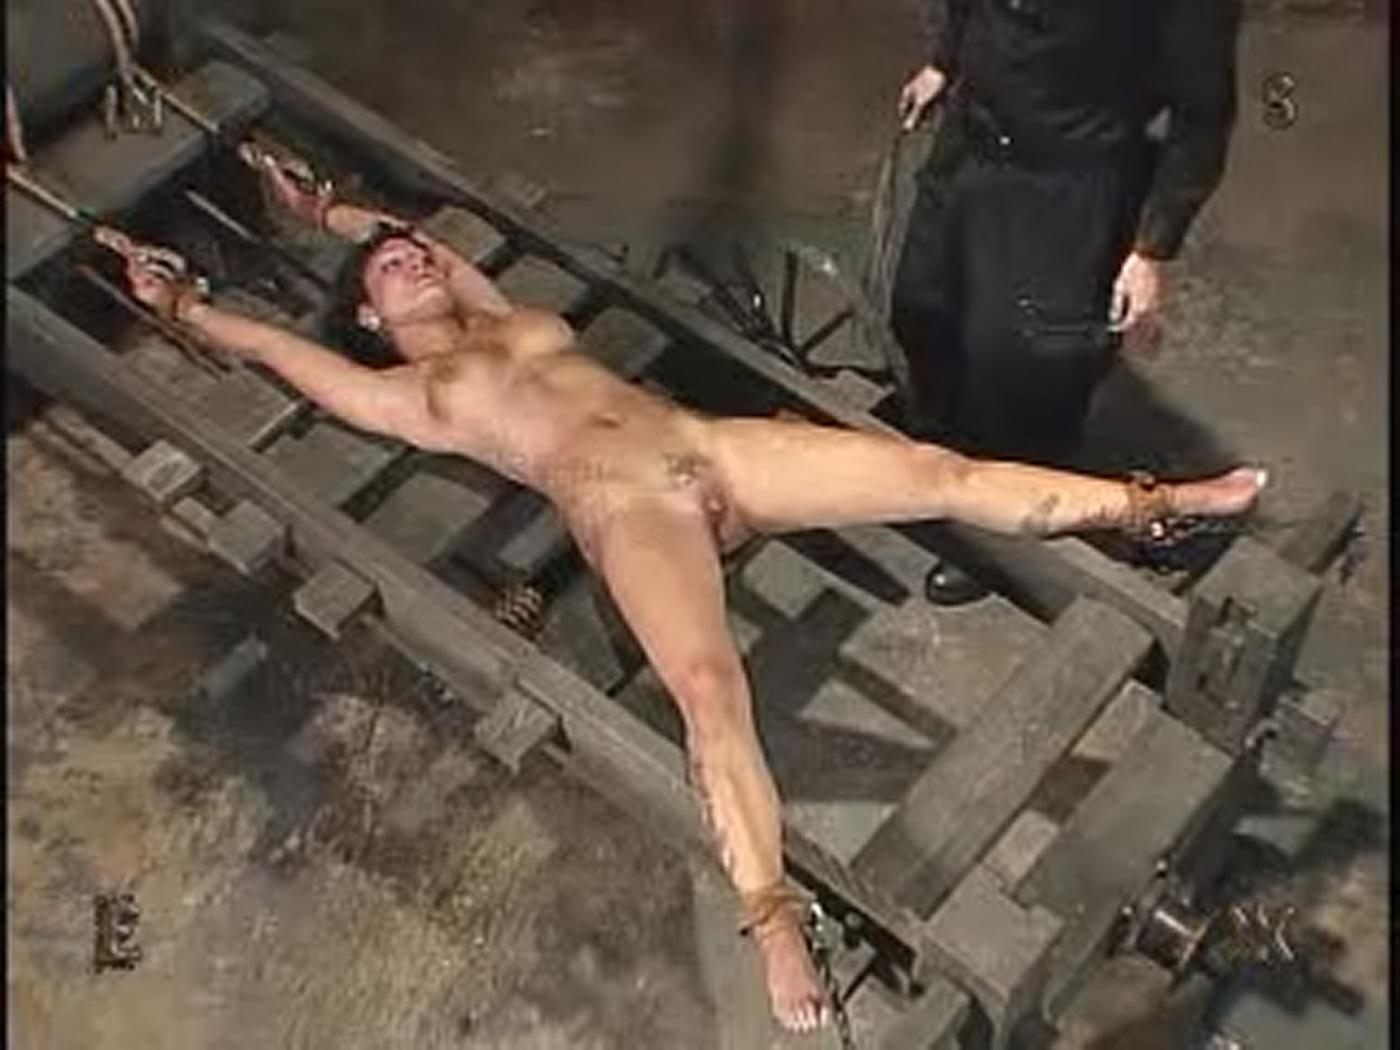 Naked female on torture rack 3d porn pics